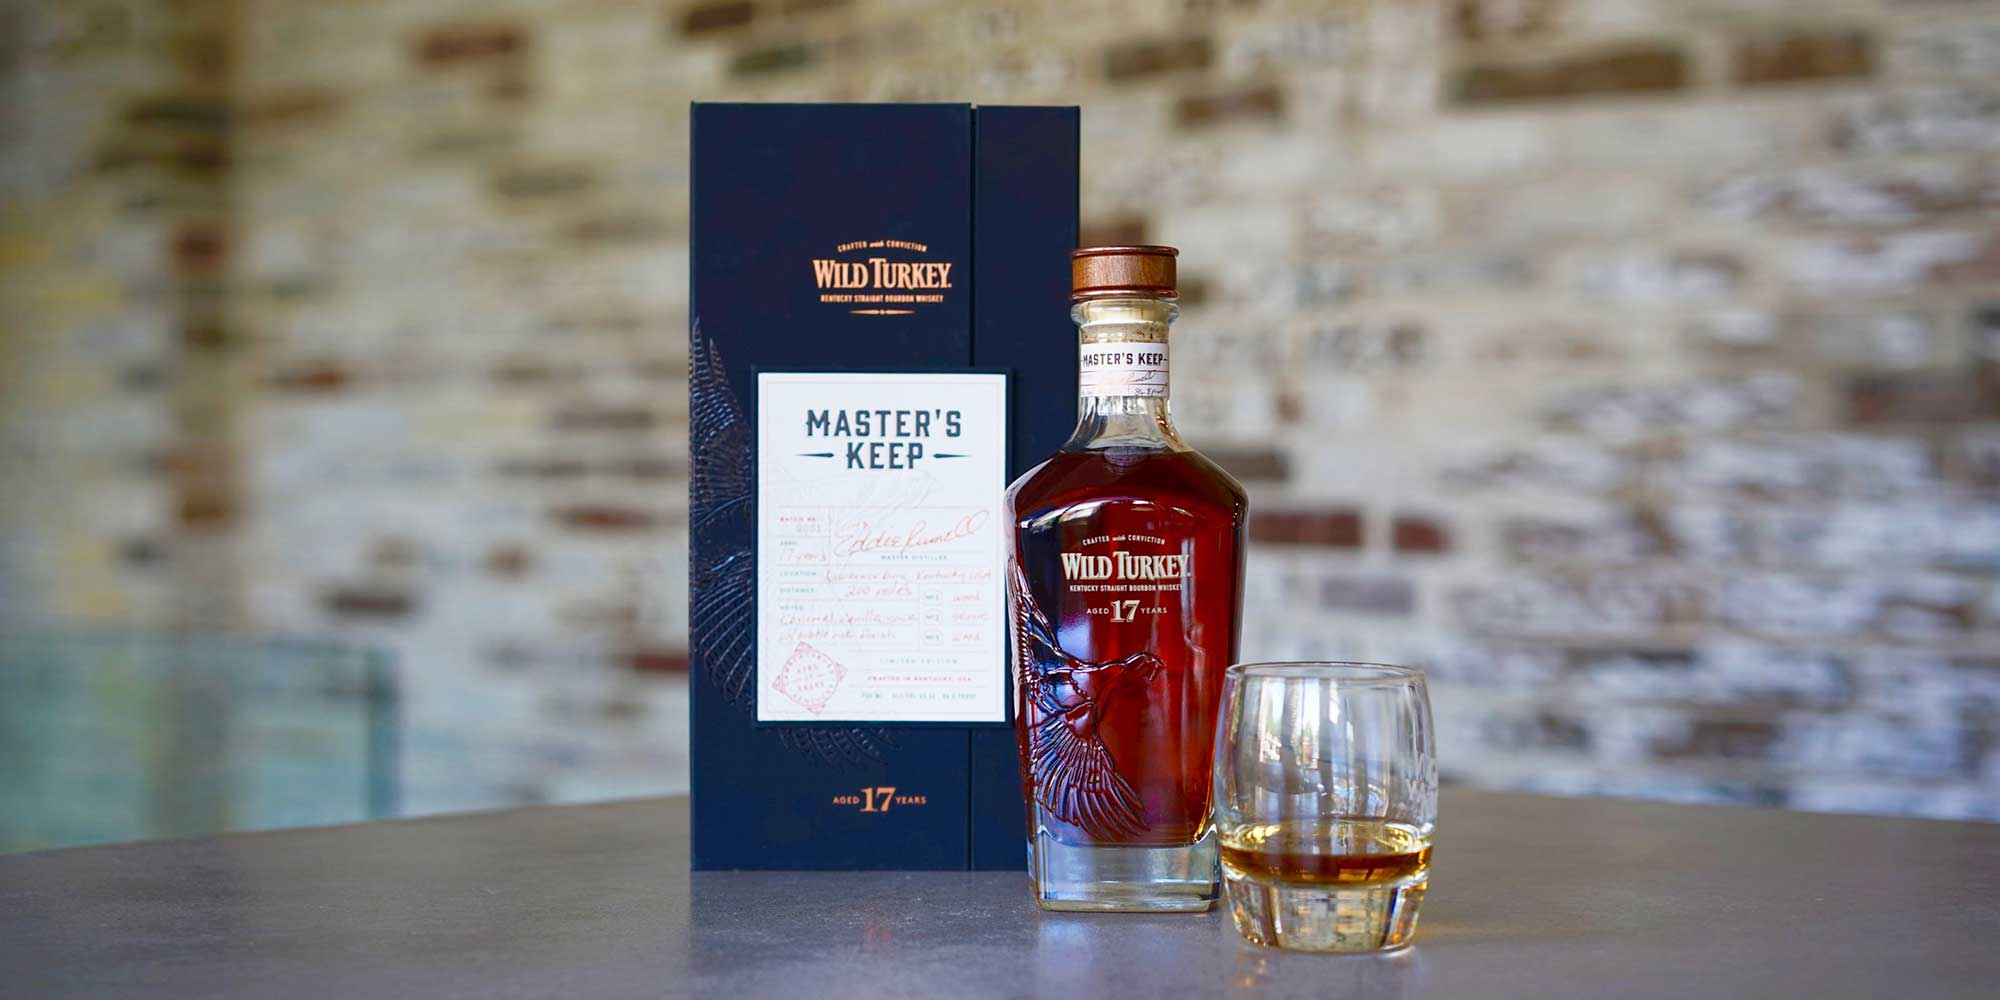 Wild Turkey Master's Keep